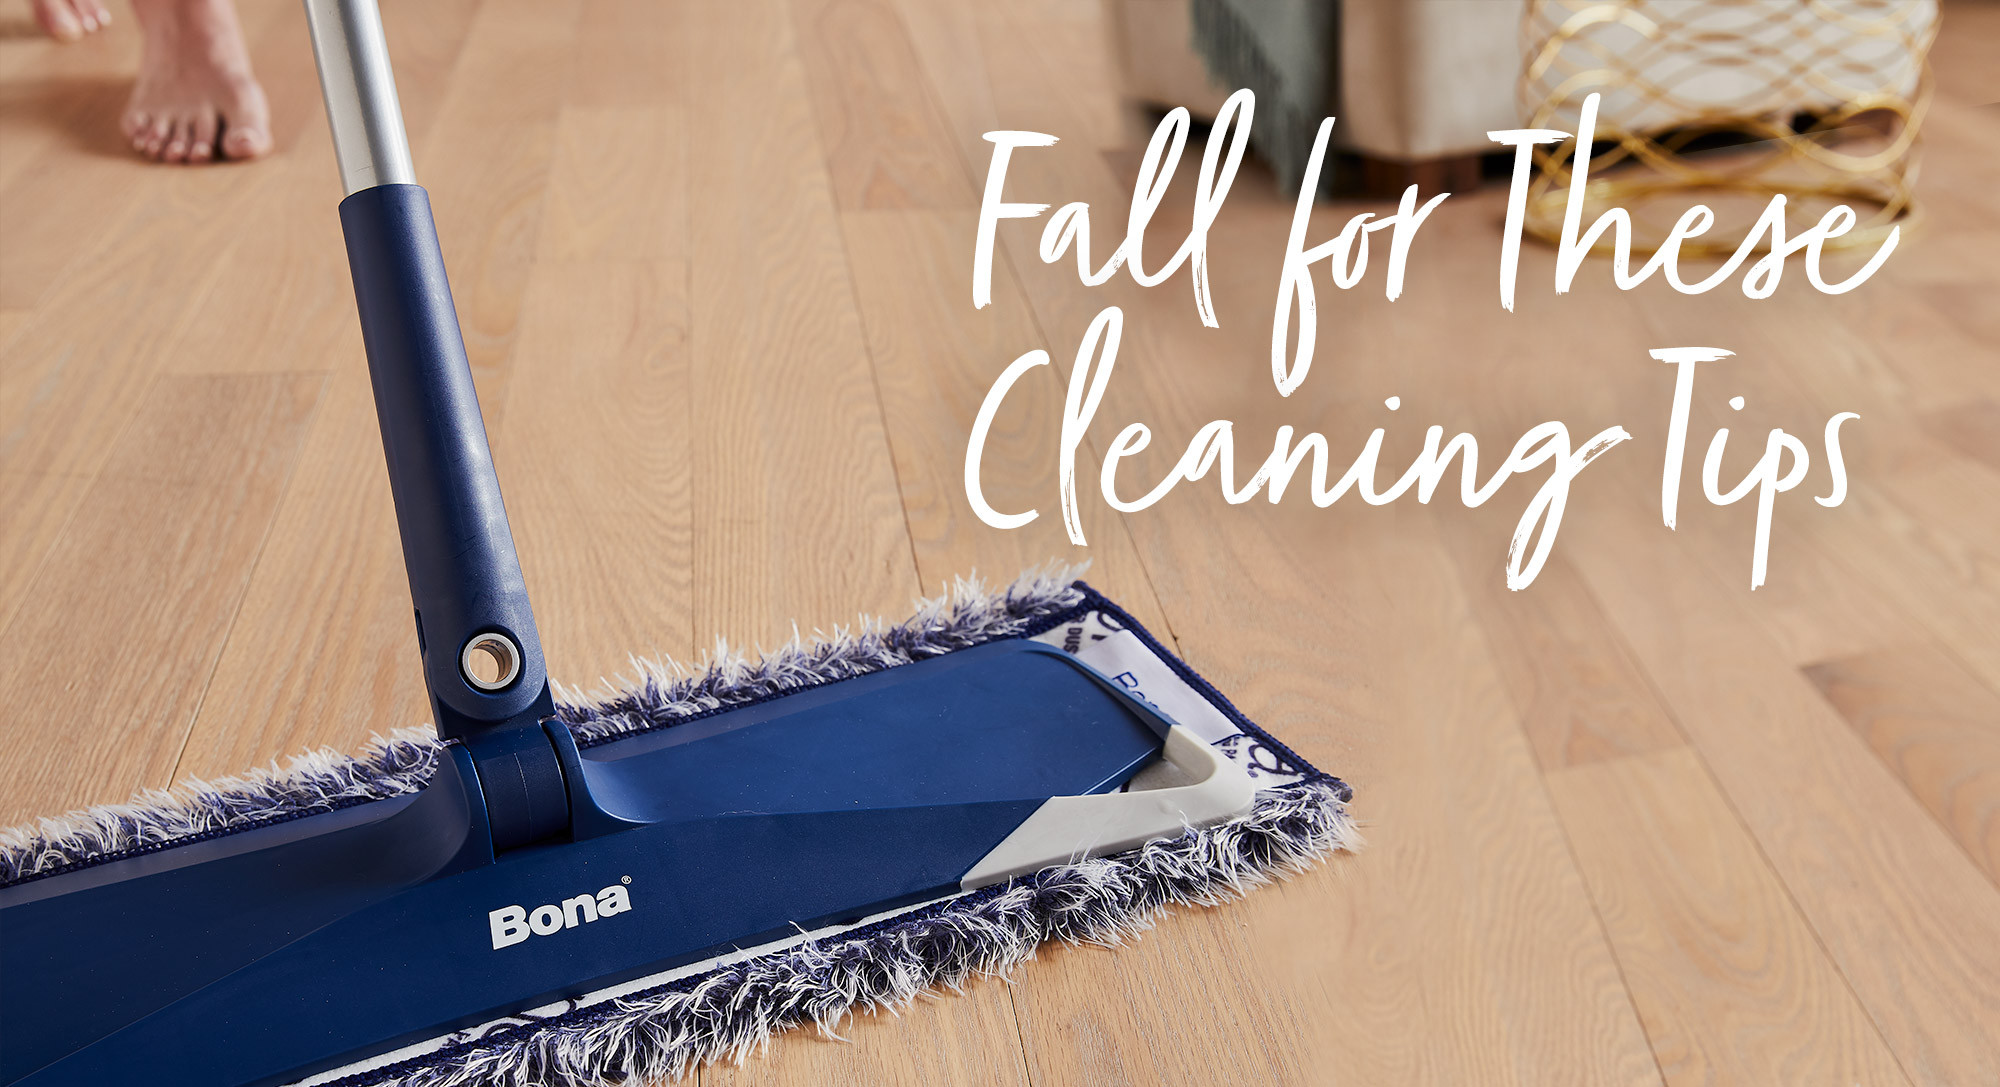 Best Hardwood Floor Cleaner Of Home Bona Us within Fall Feature2